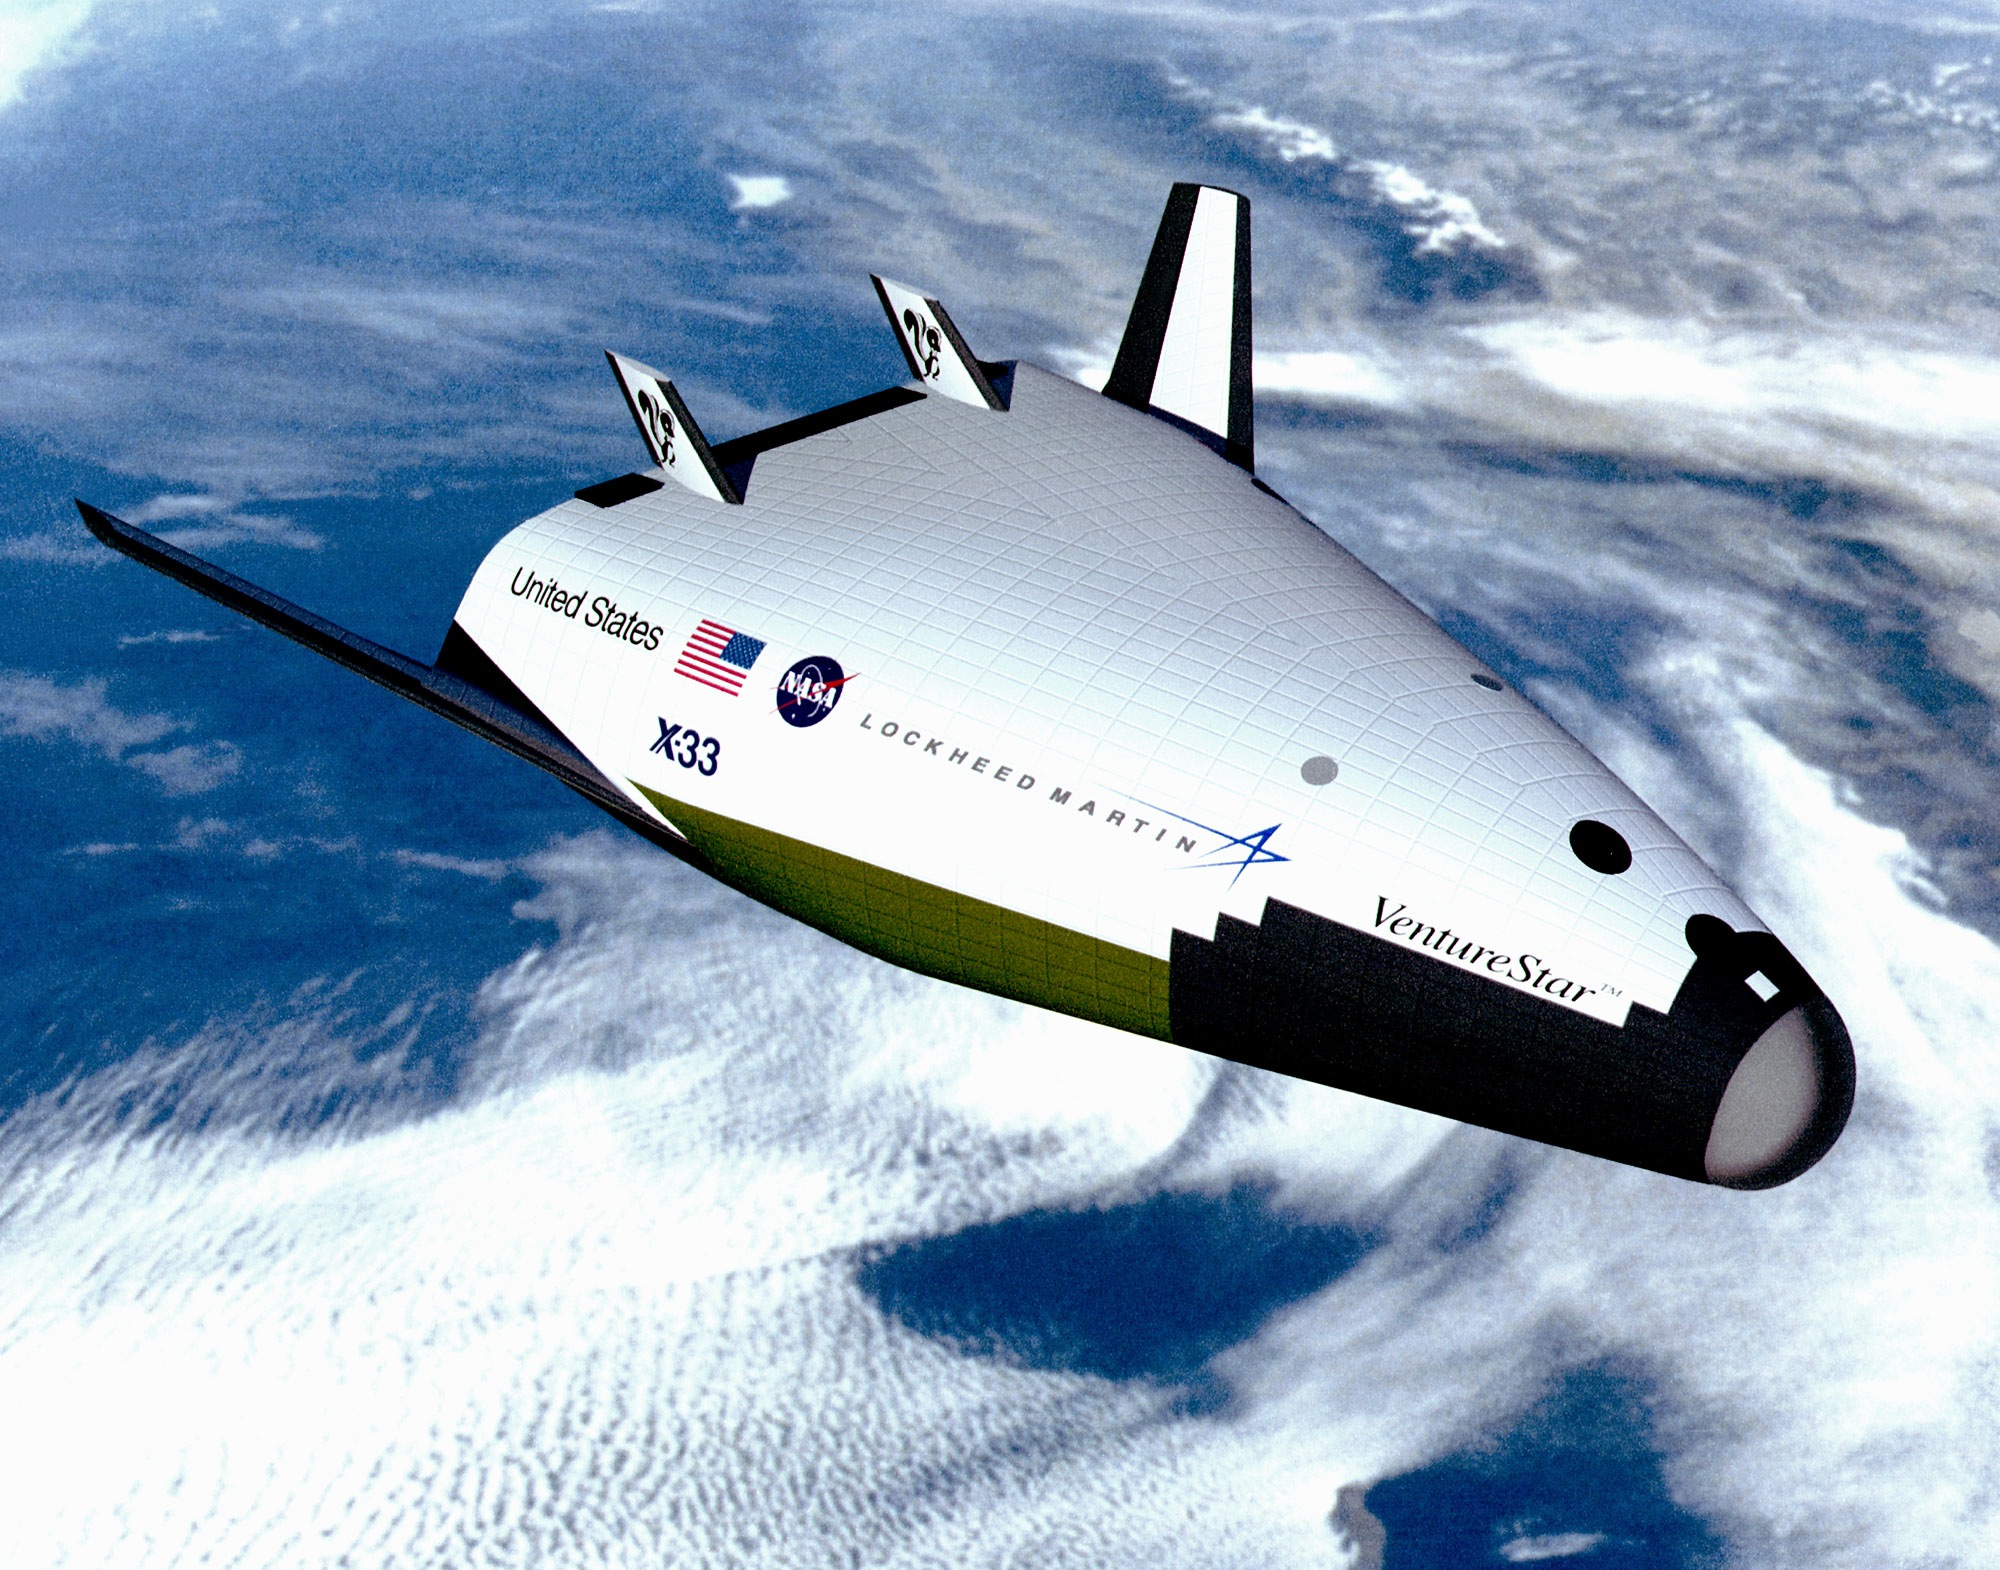 nasa space shuttle replacement vehicle - photo #12